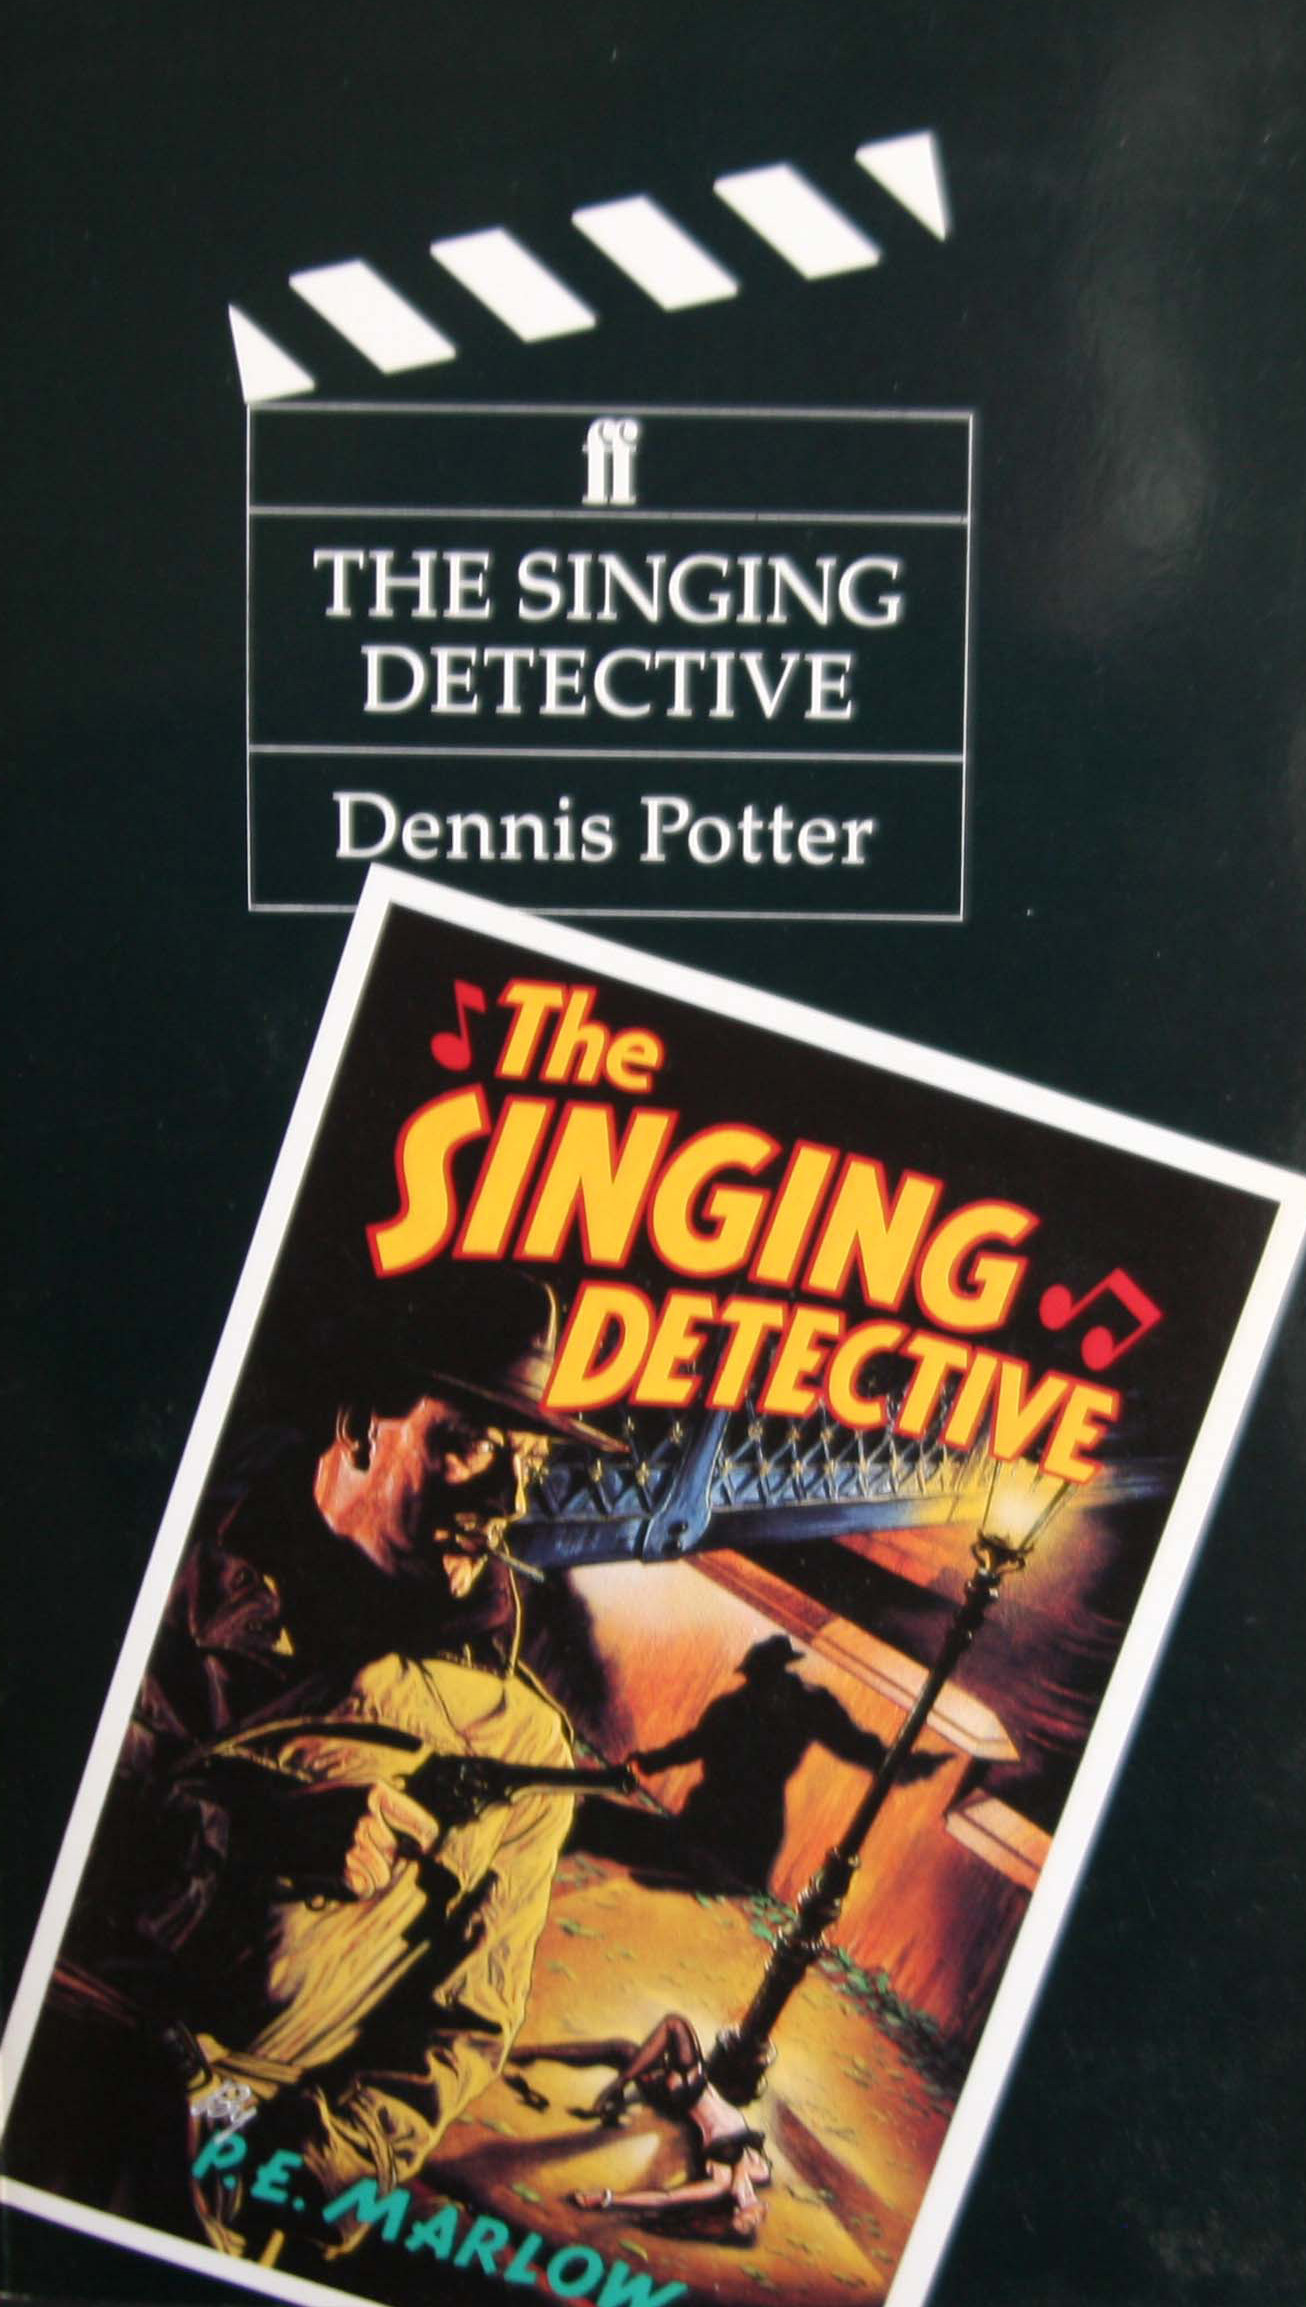 Dennis Potter The Singing Detective first edition